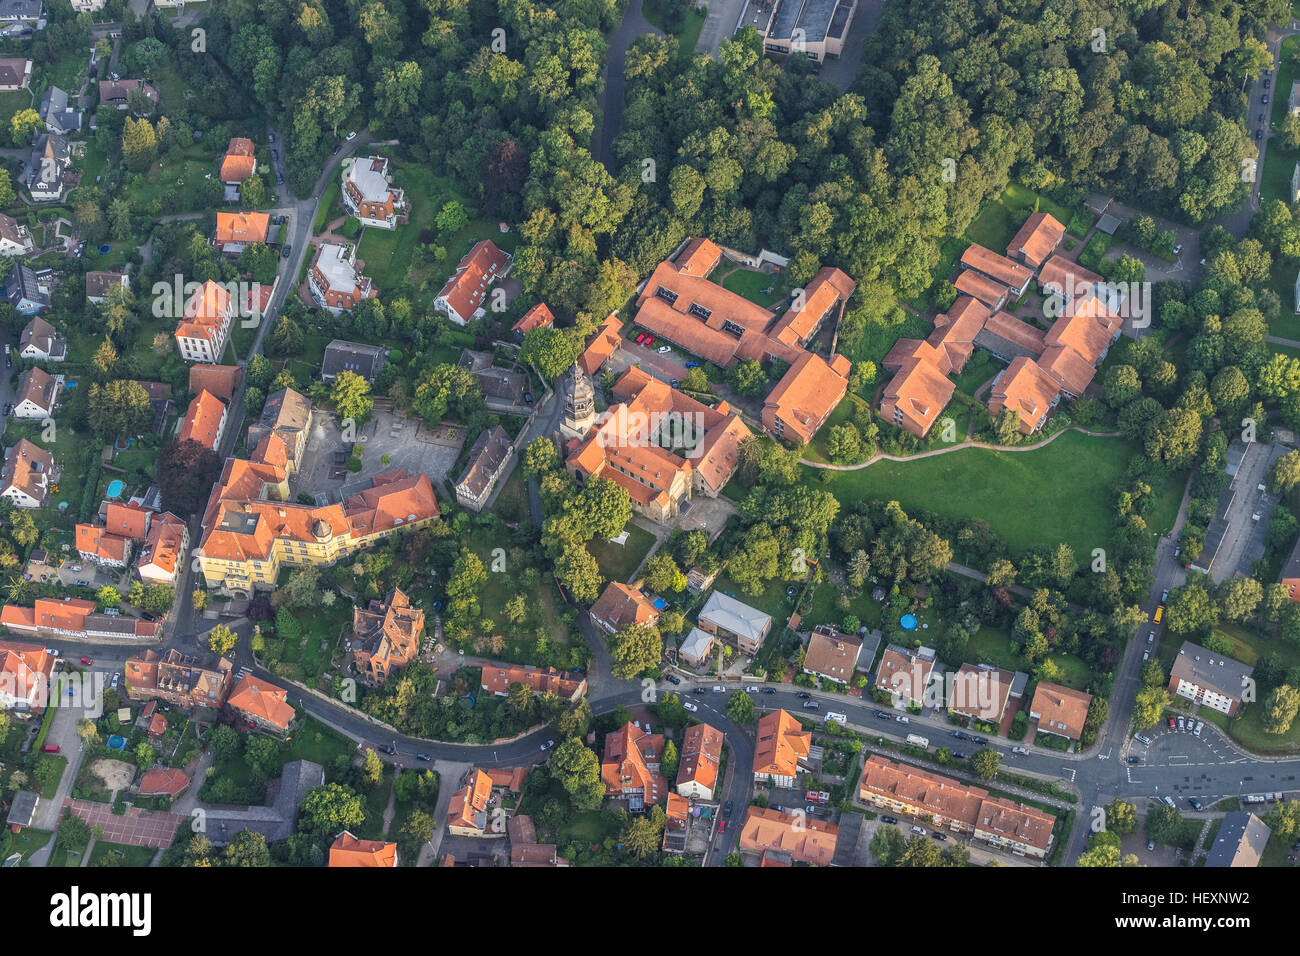 Germany, Hildesheim, arial view of St. Mauritius - Stock Image